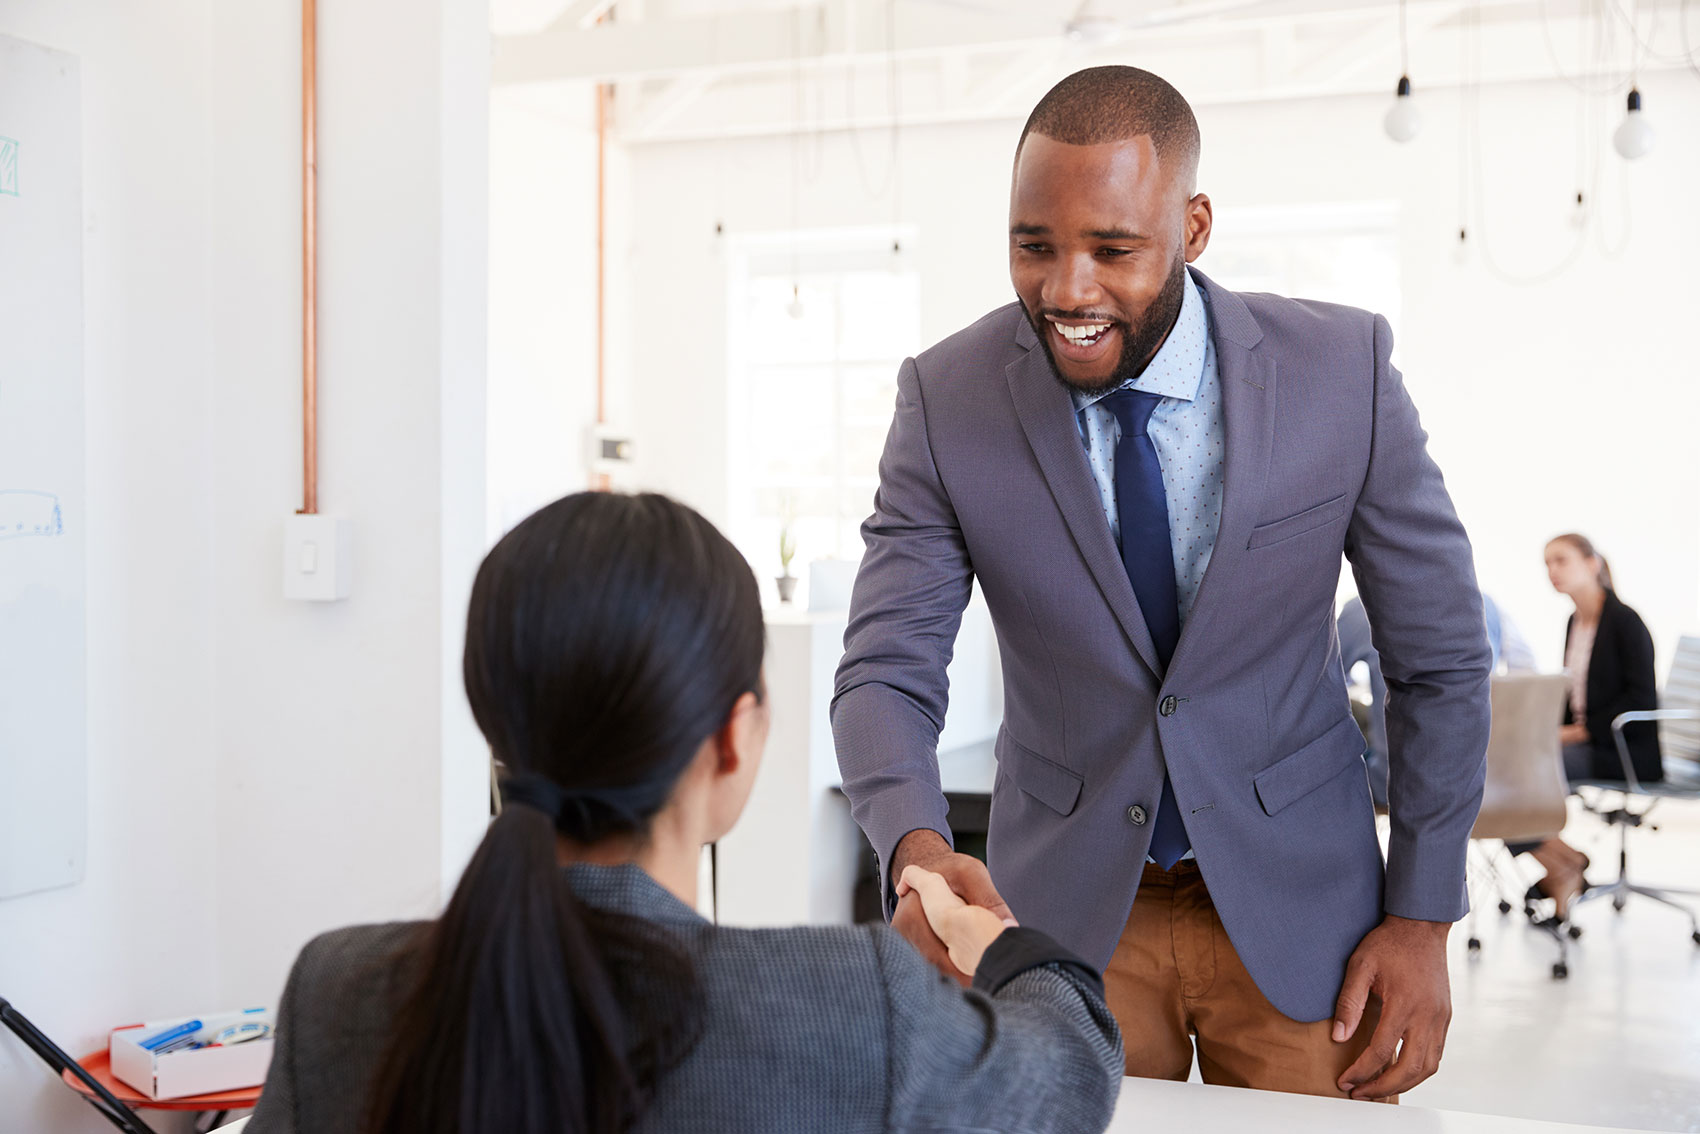 The 3 Parts of an Effective Executive Interview